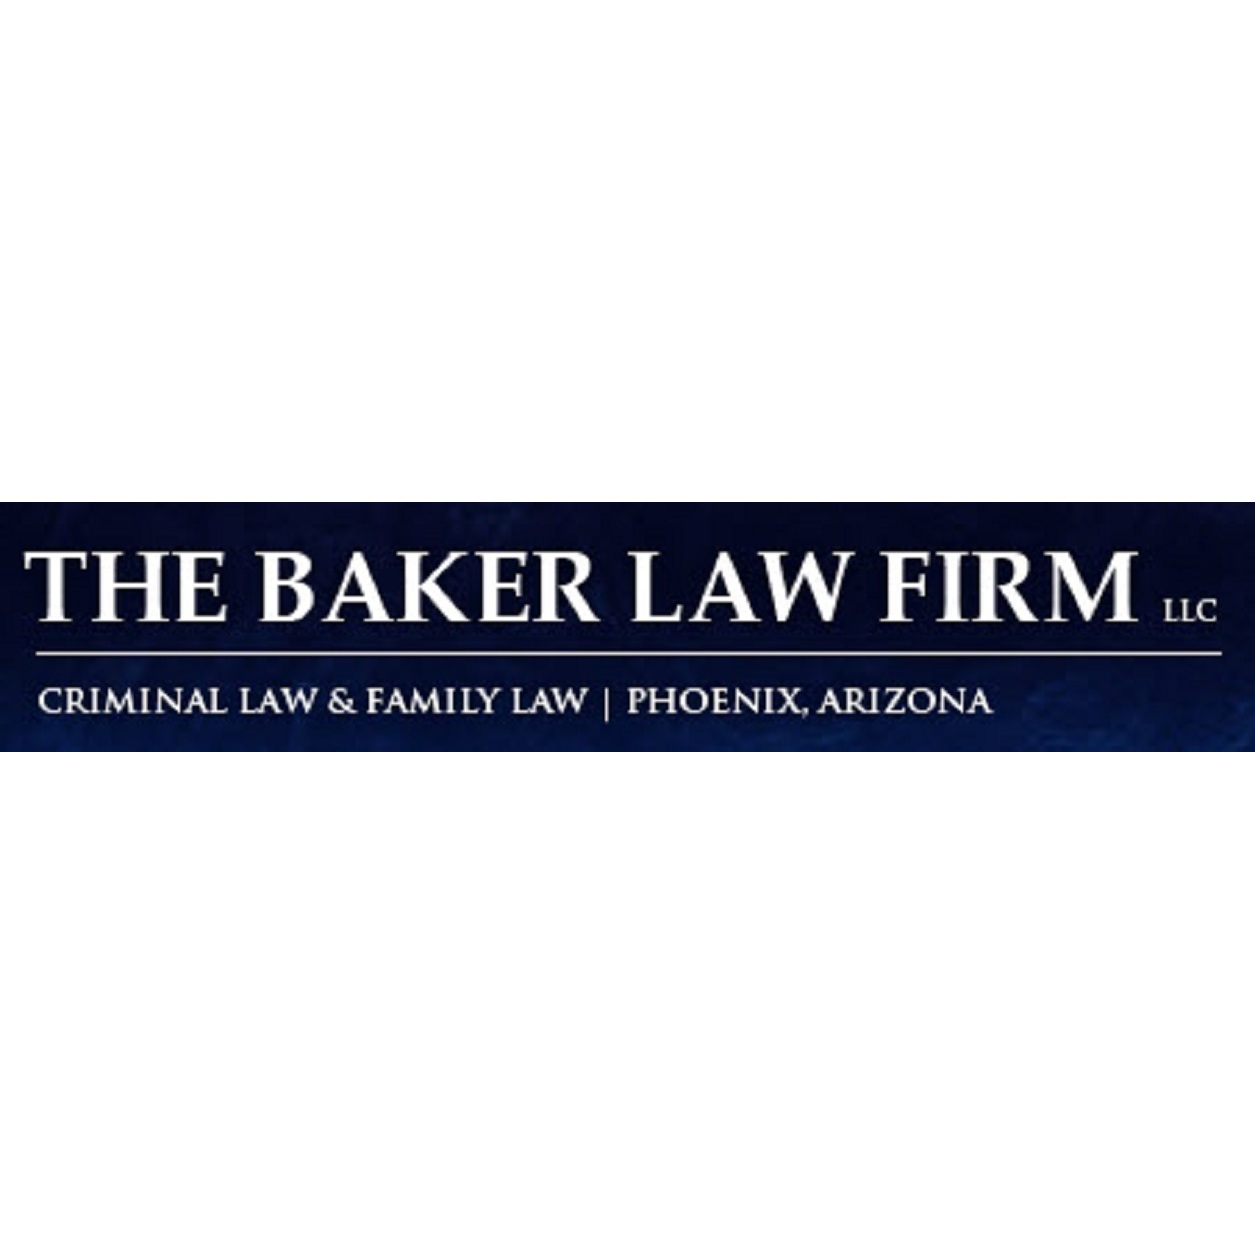 The Baker Law Firm, LLC